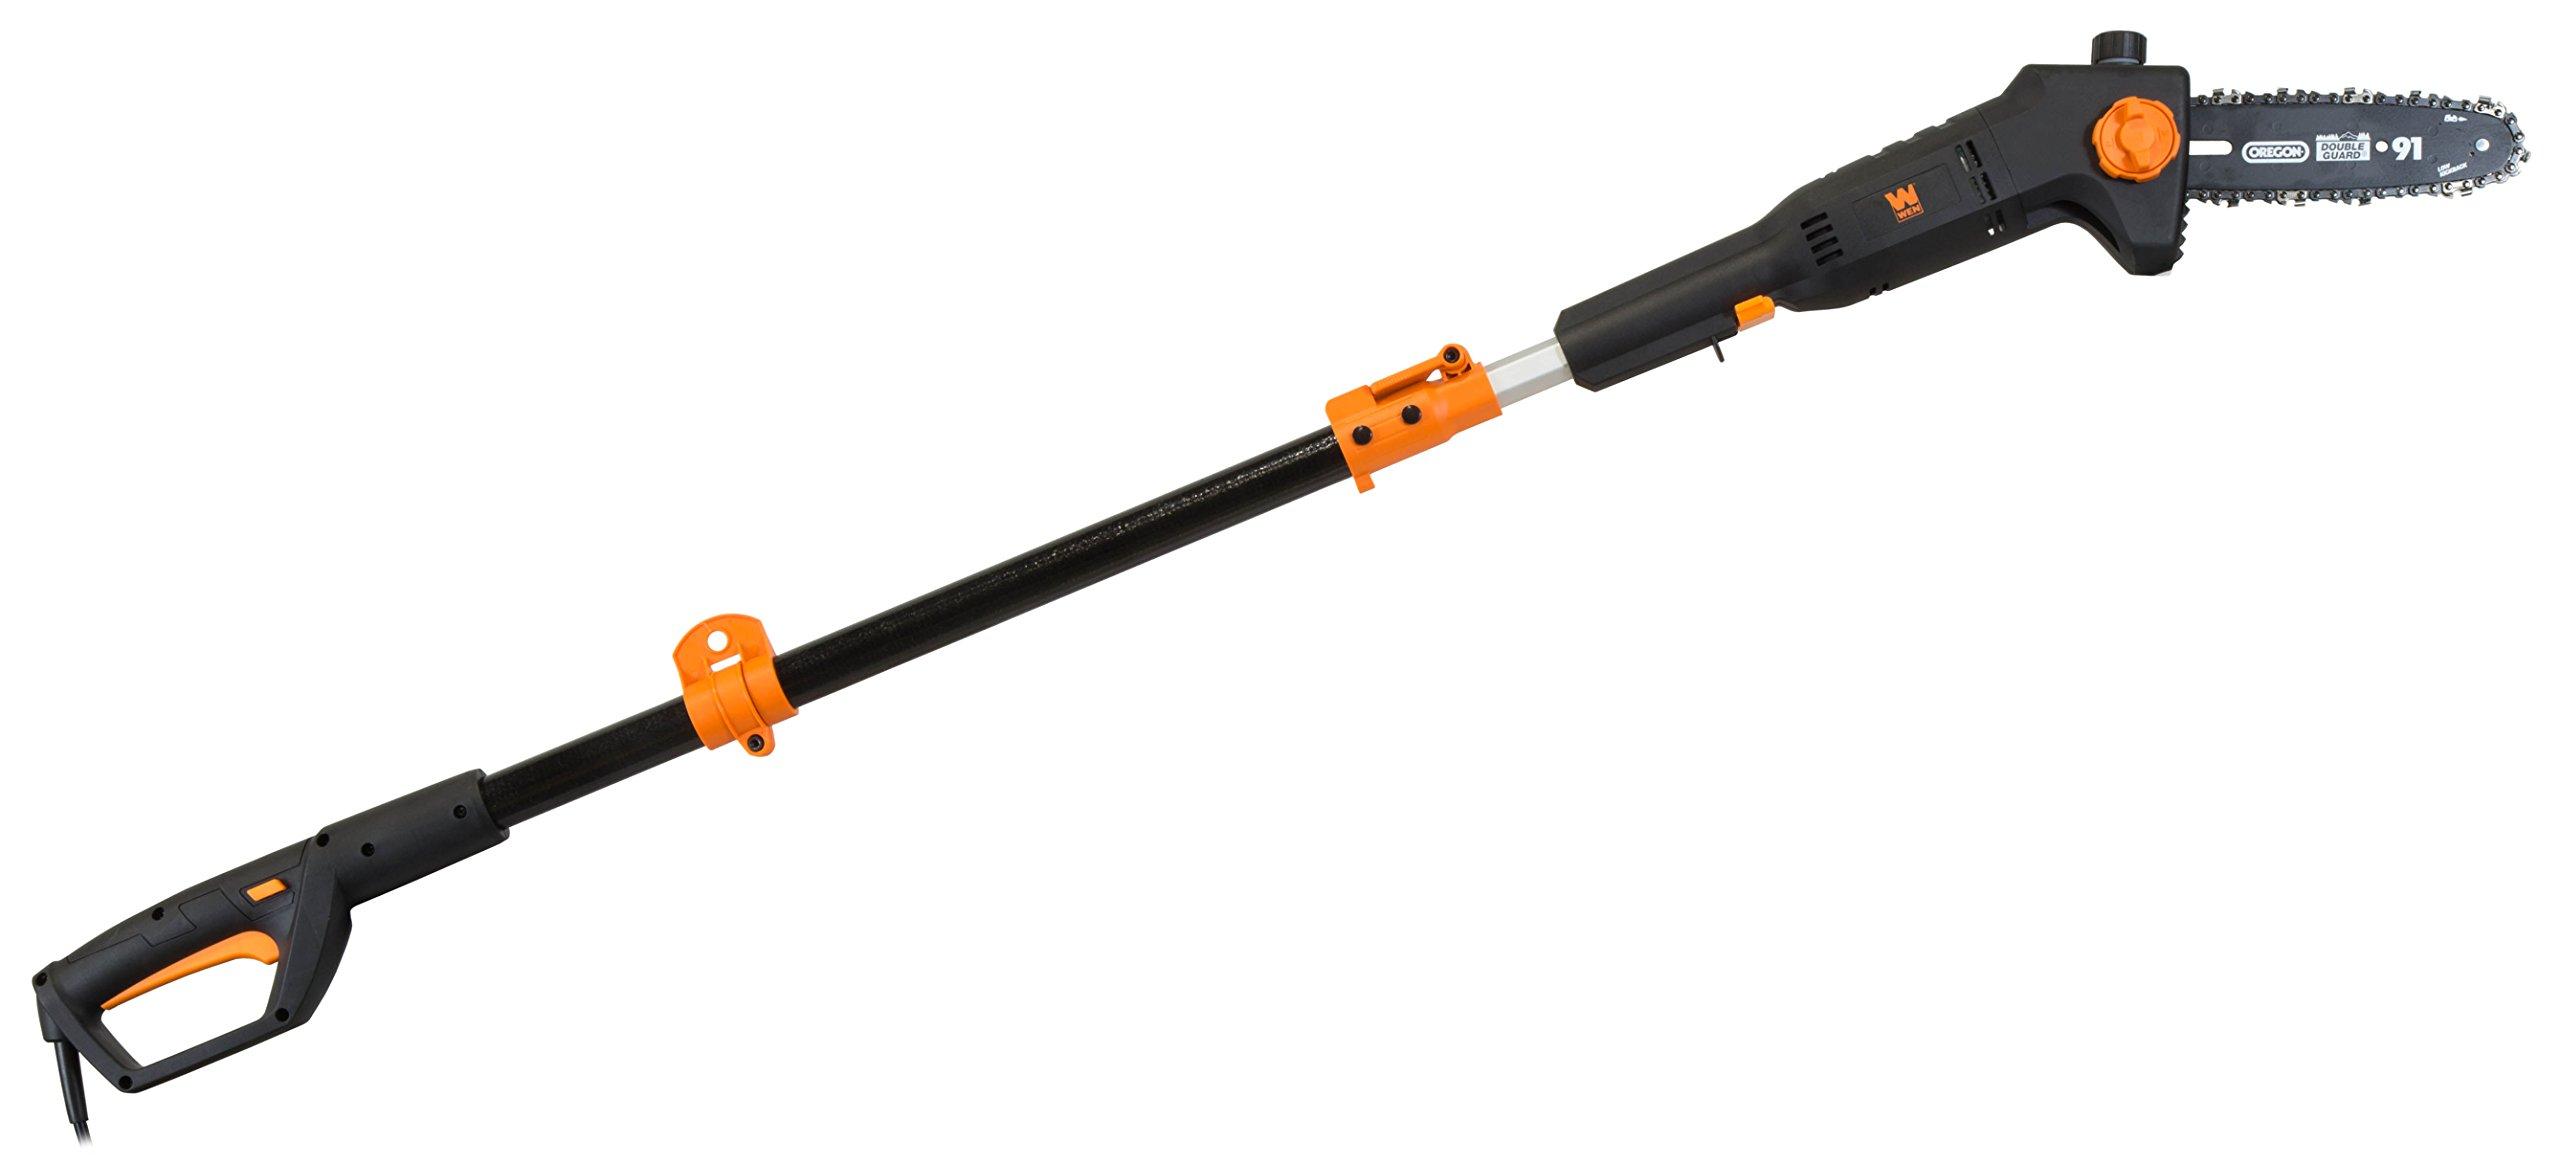 WEN 4019 6-Amp 8-Inch Electric Pole Saw with 8.75-Foot Reach